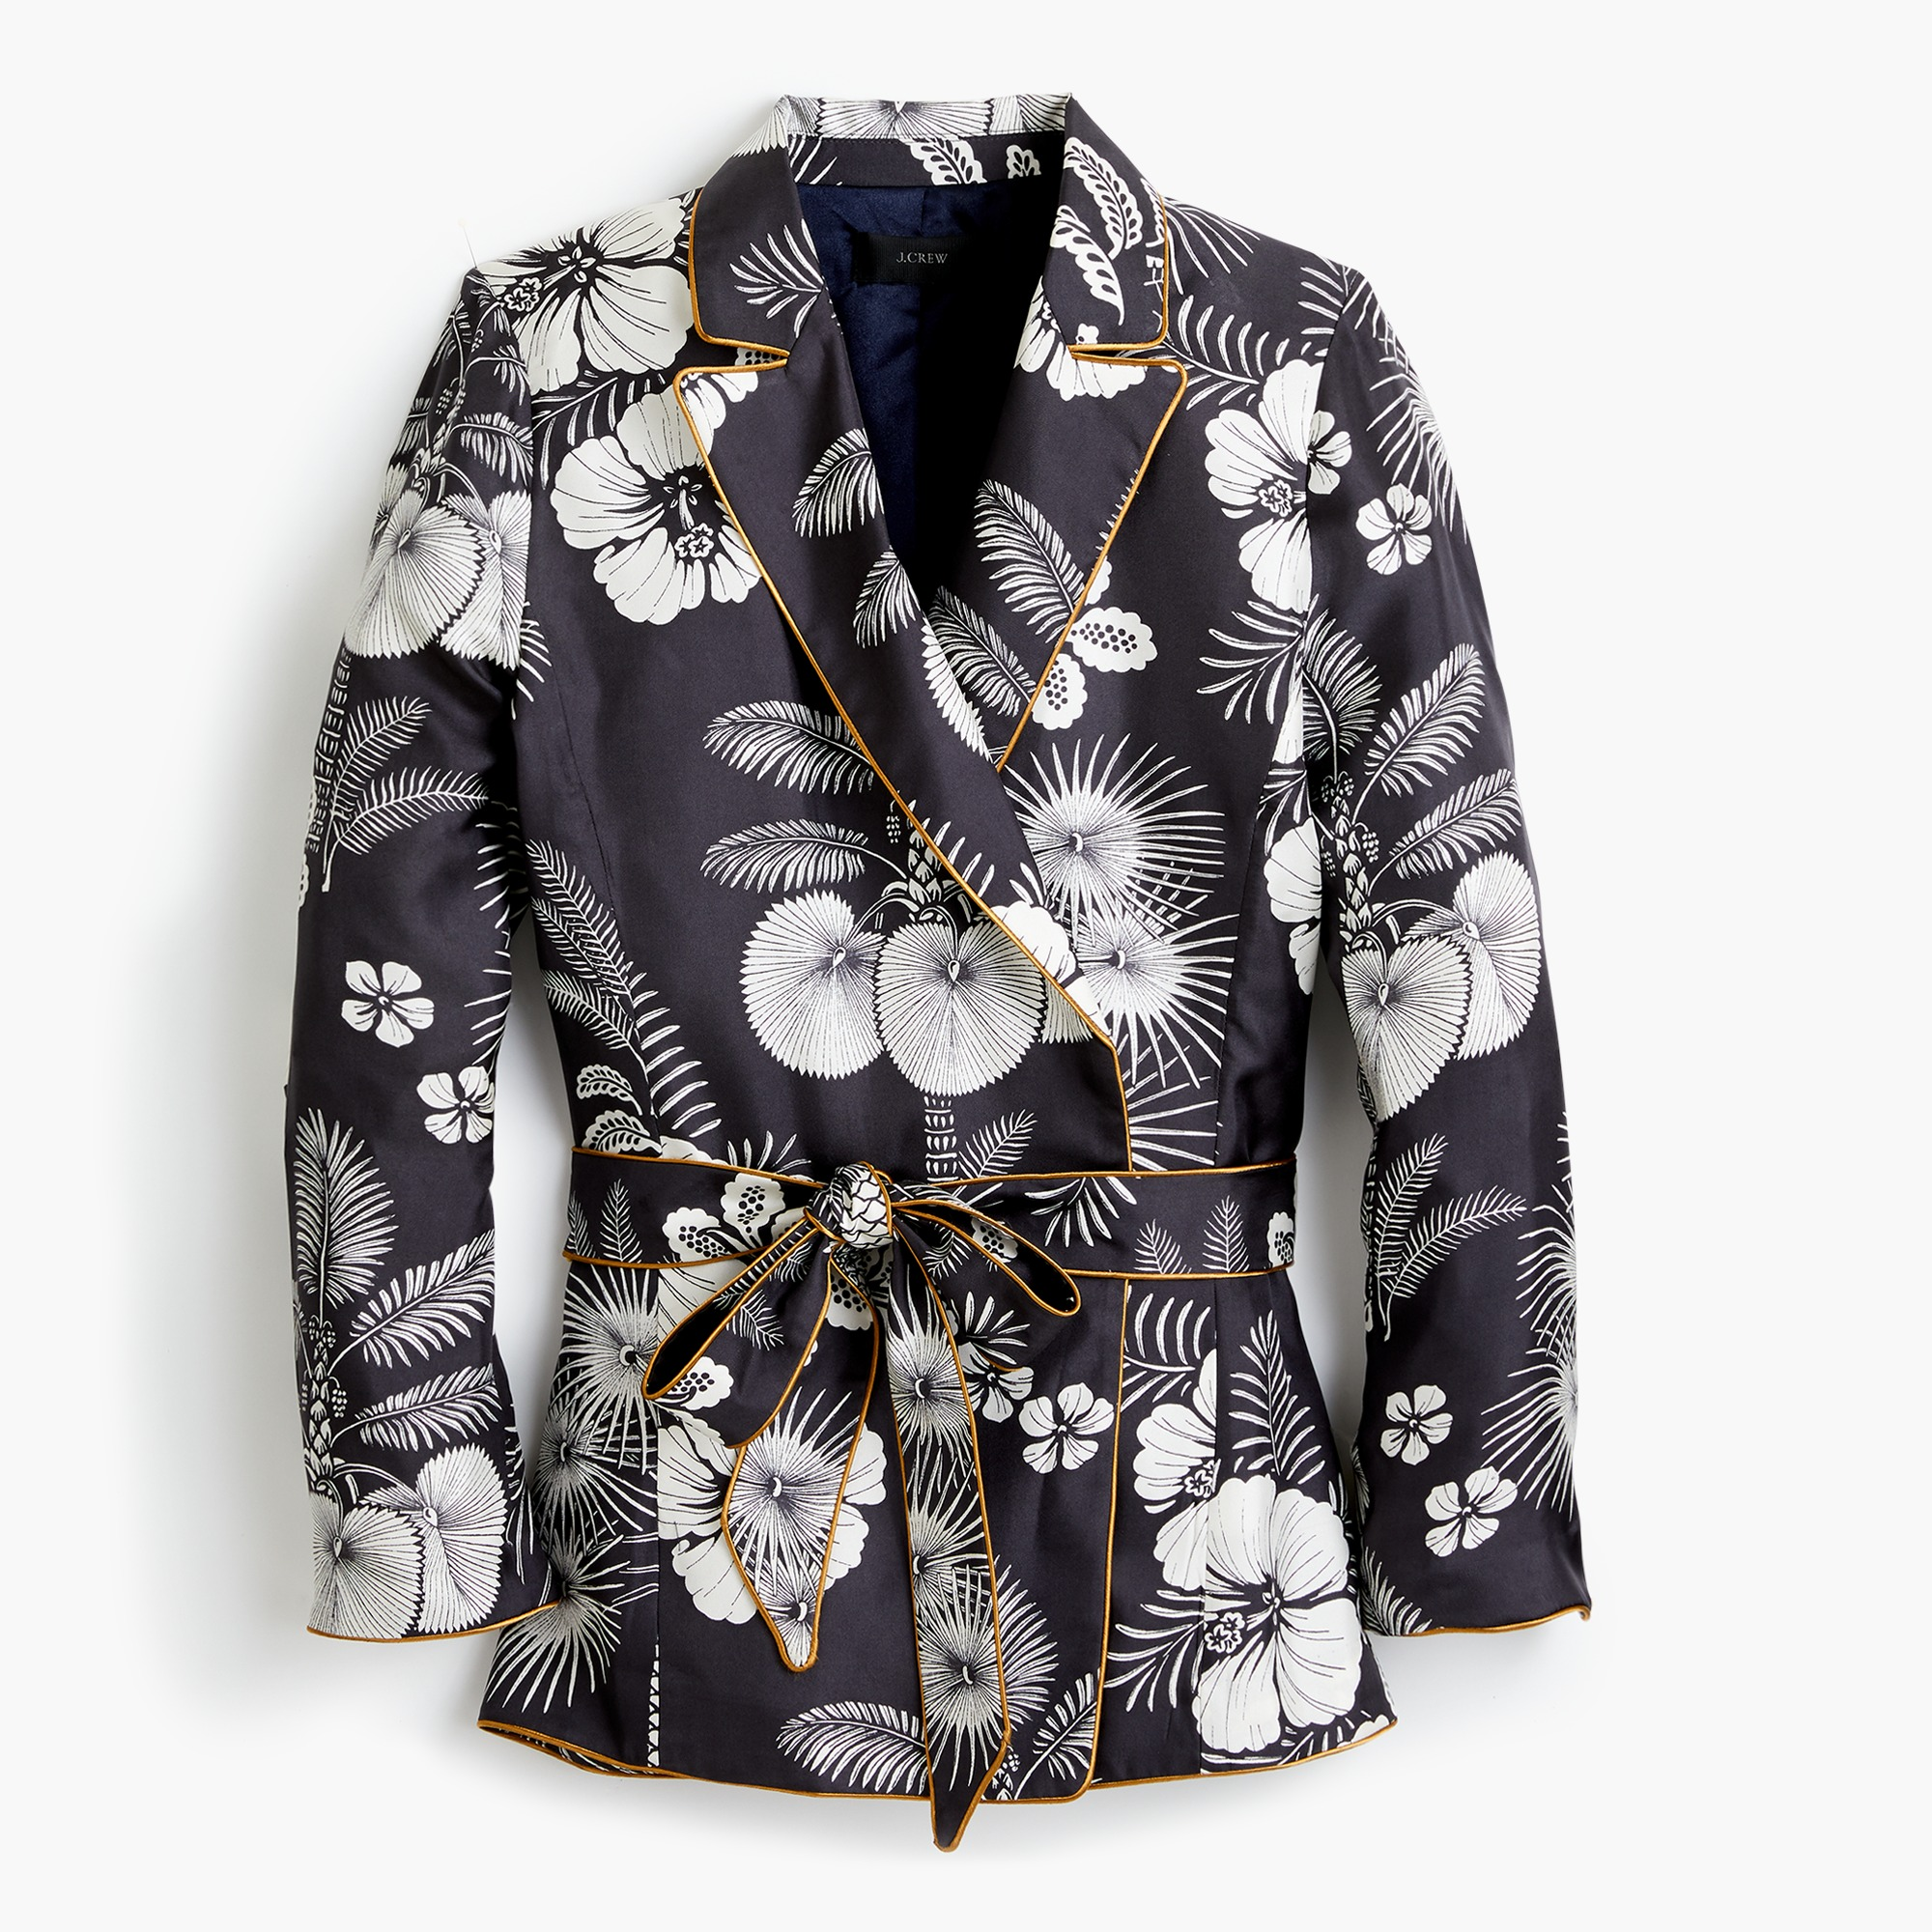 Image 2 for Silk wrap blazer in island floral